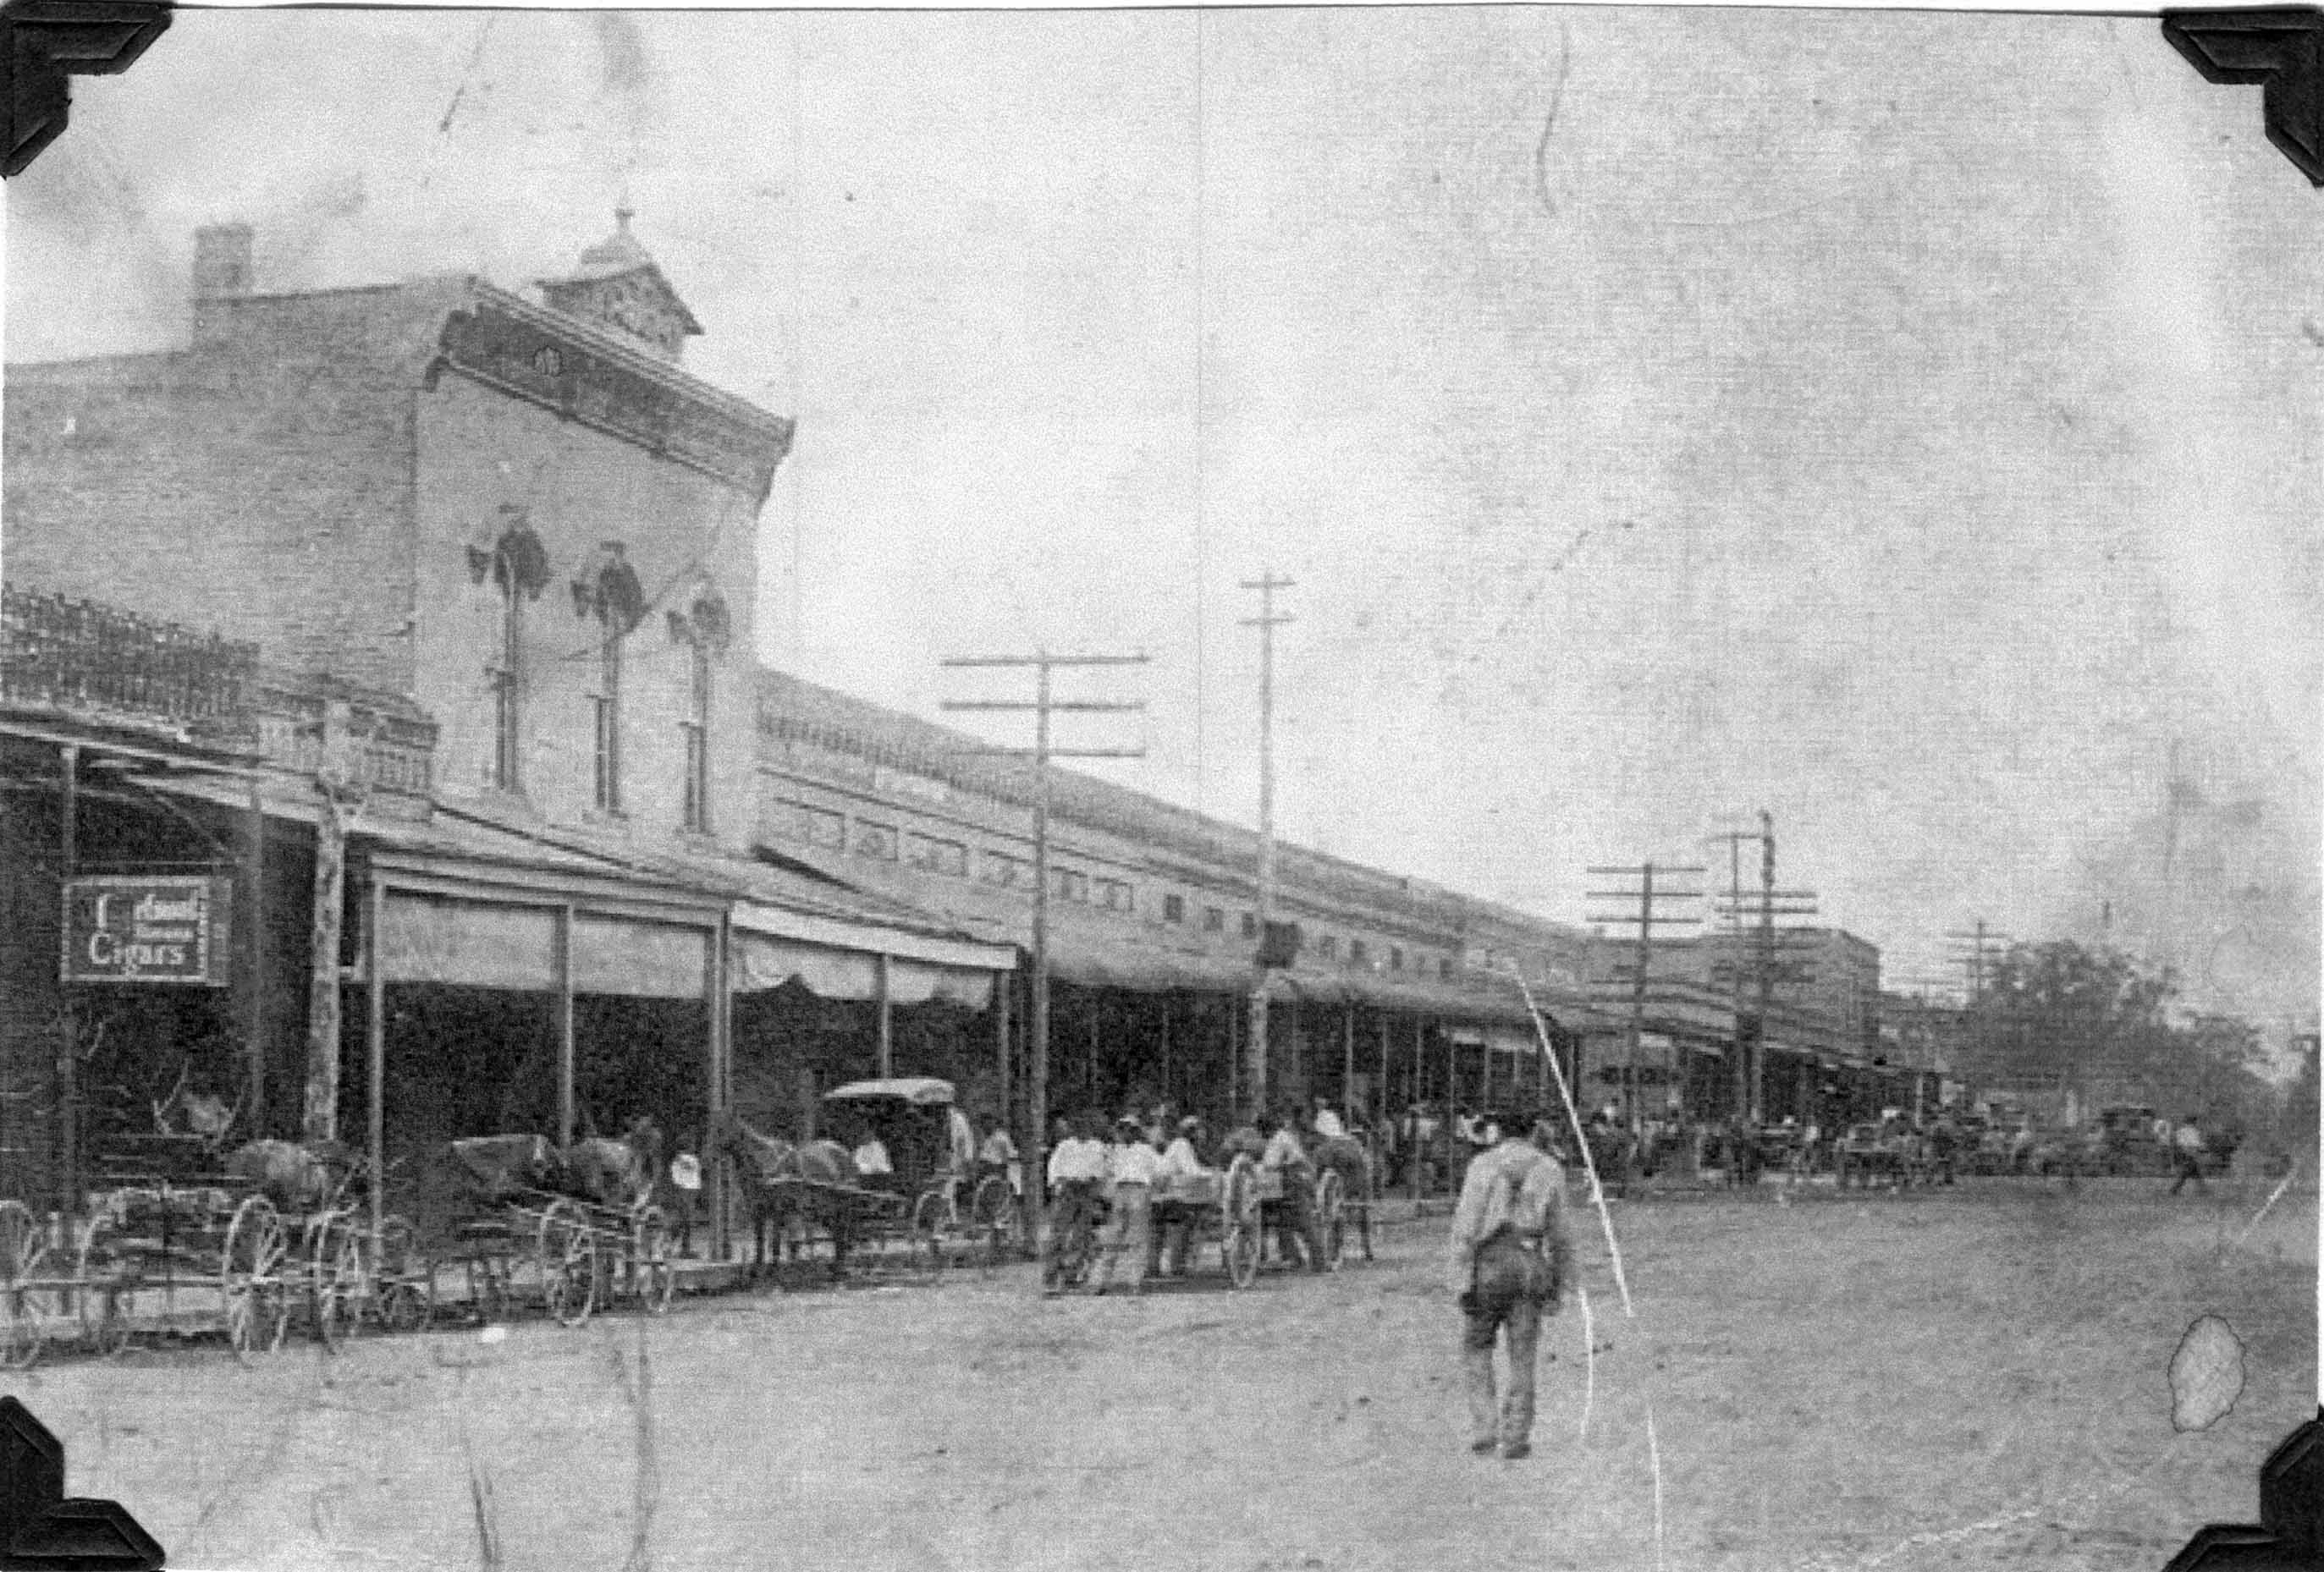 Downtown Macon, Mississippi early 1900s